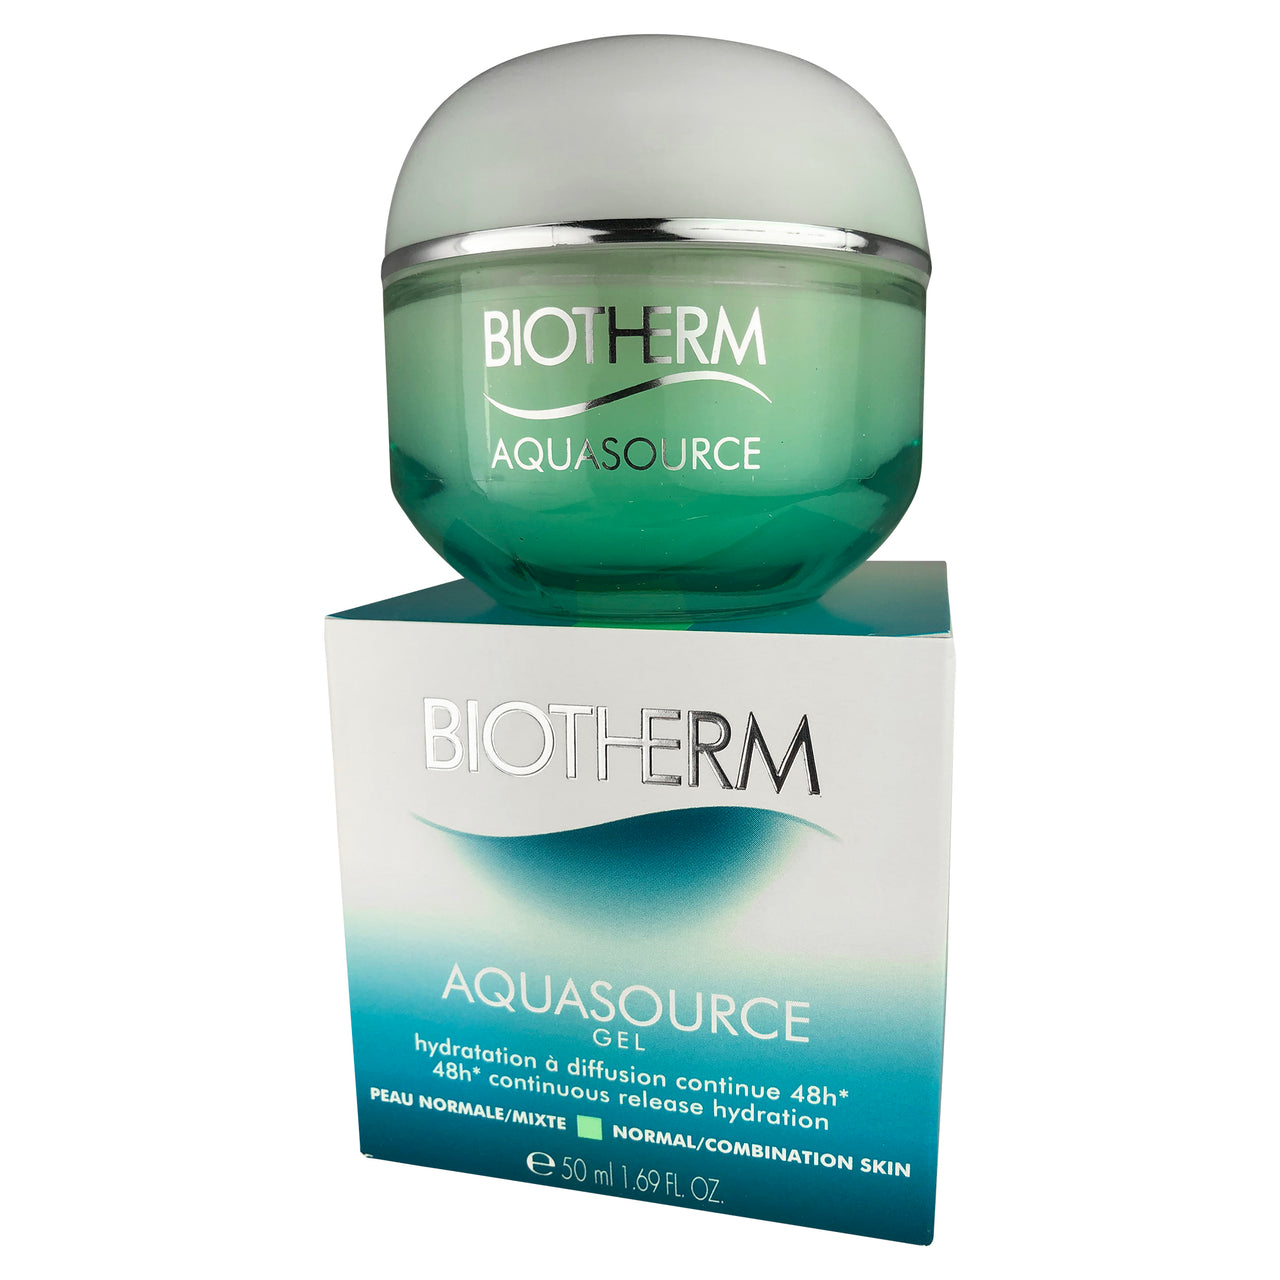 Biotherm Aquasource Face Gel 48 hr Hydration Normal to Combination Skin 1.69 oz